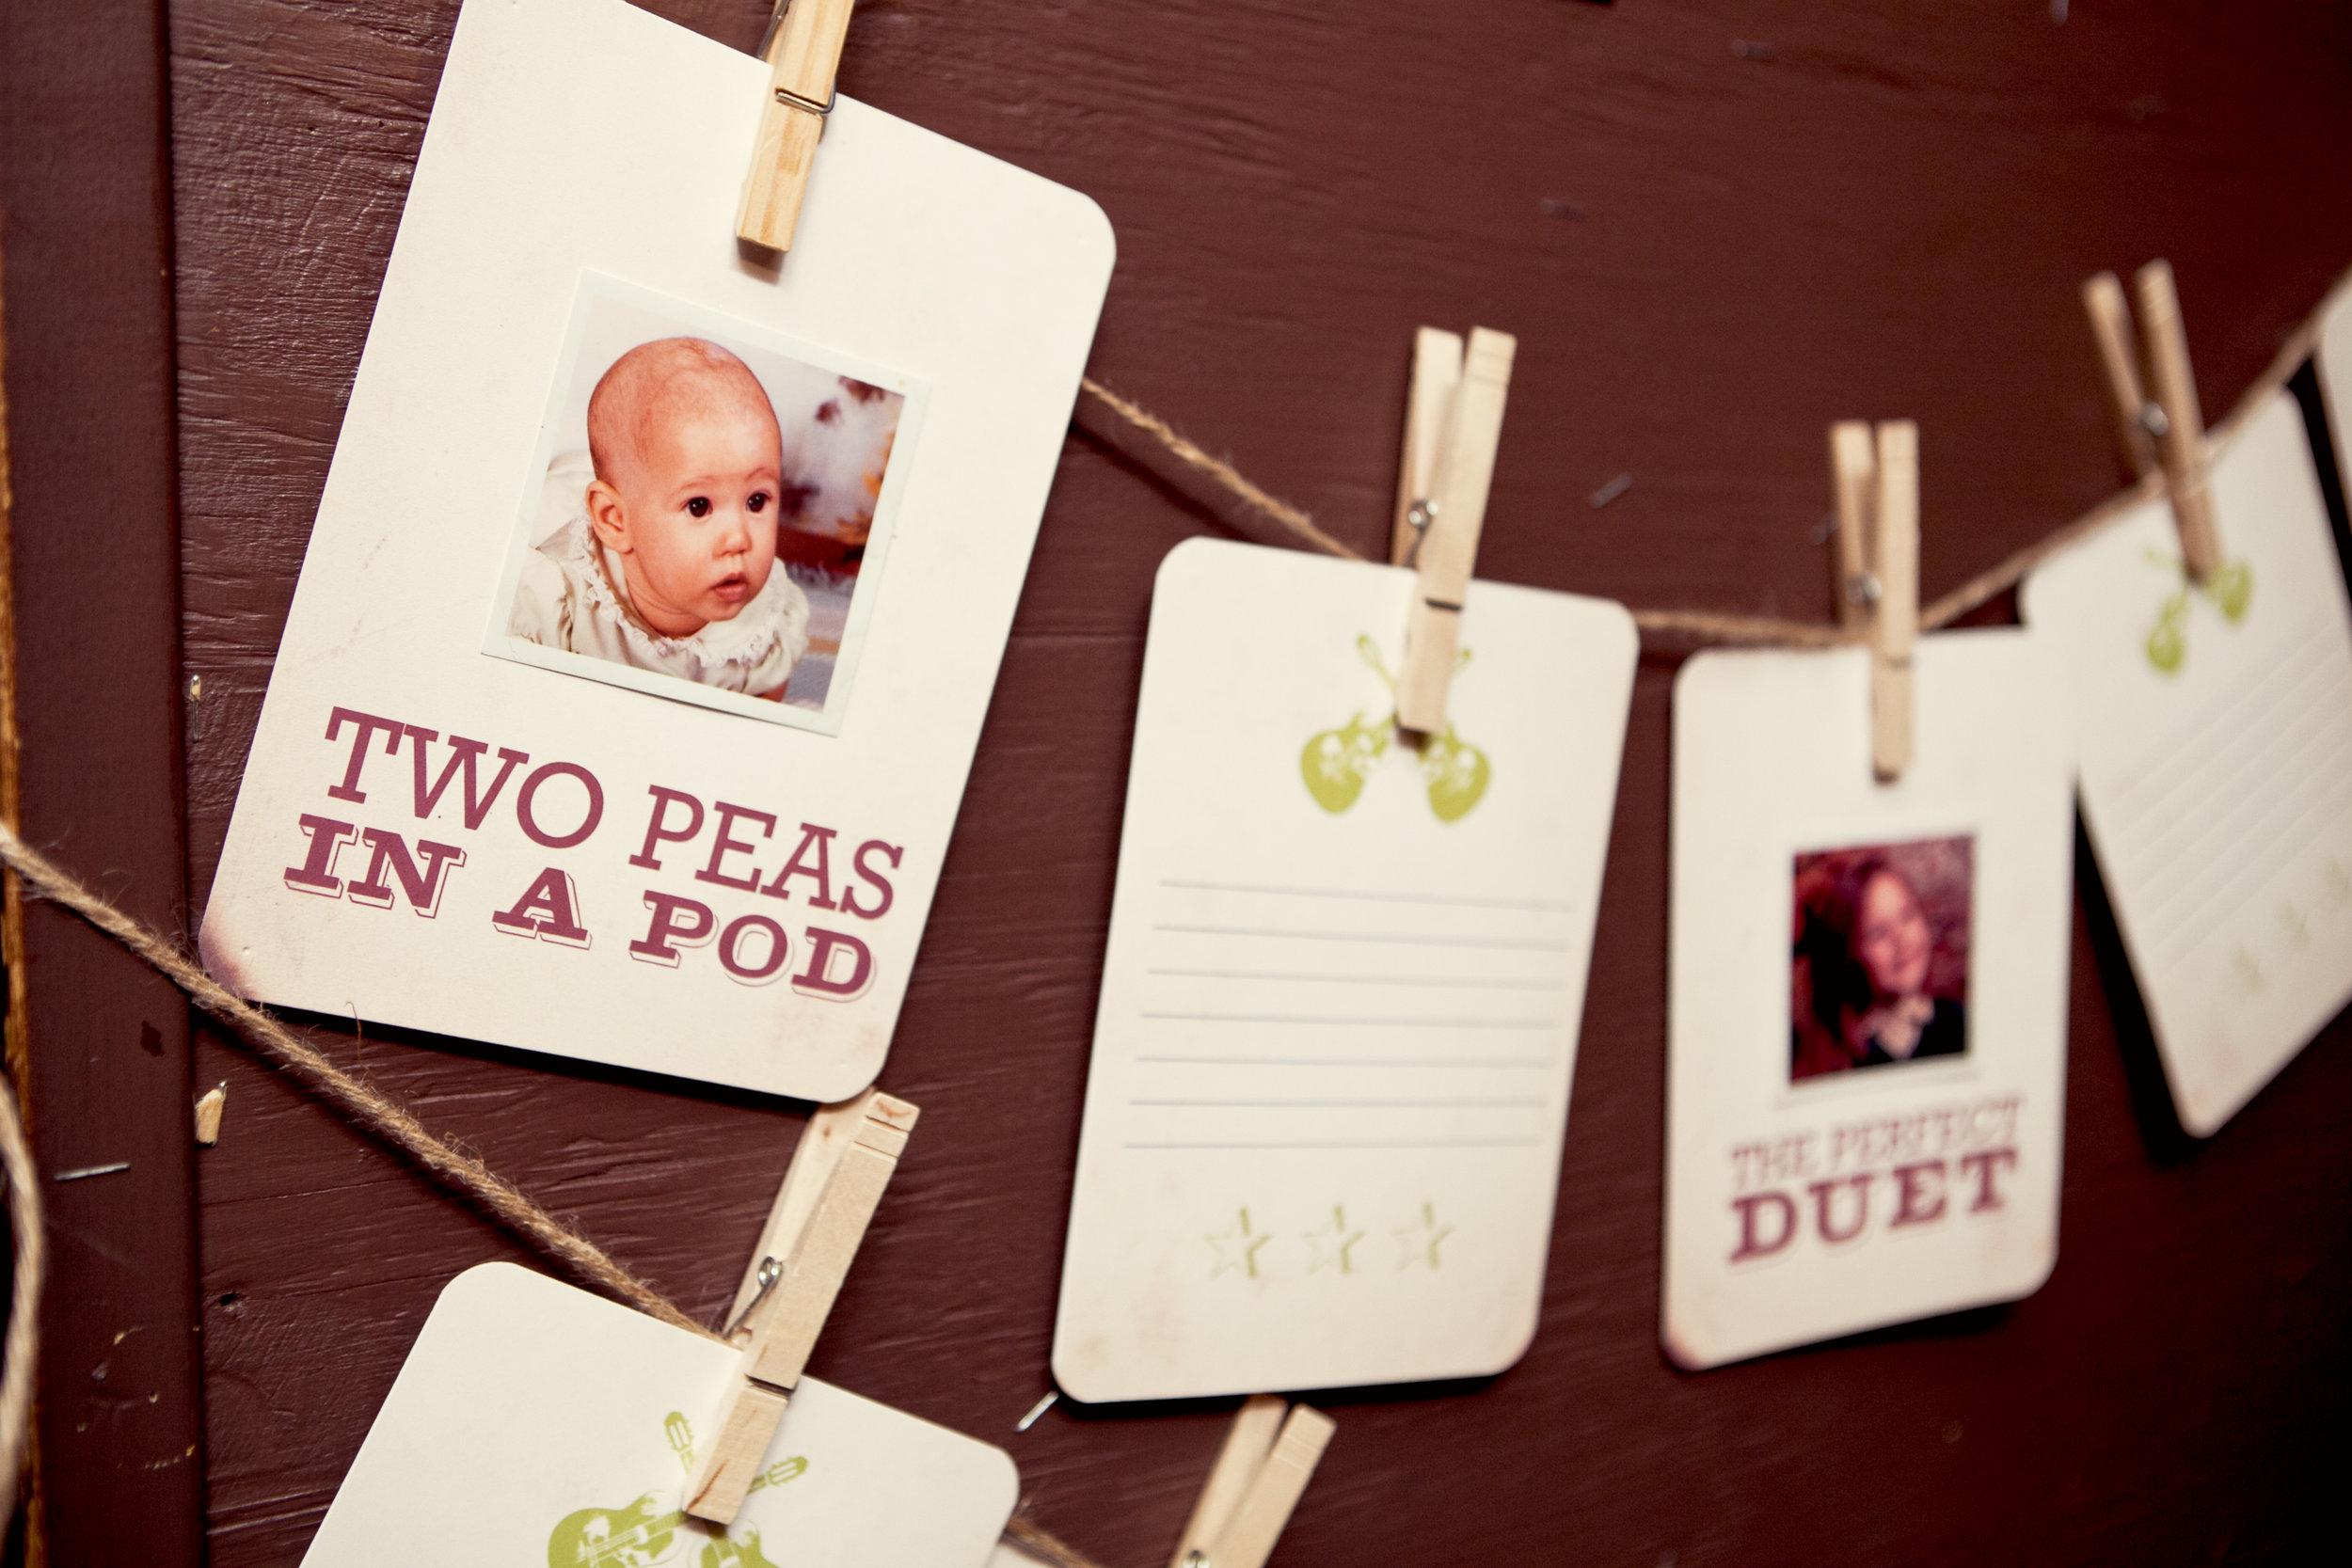 """Two Peas in a Pod"" and ""The Perfect Duet"" are just 2 of the cards we did."